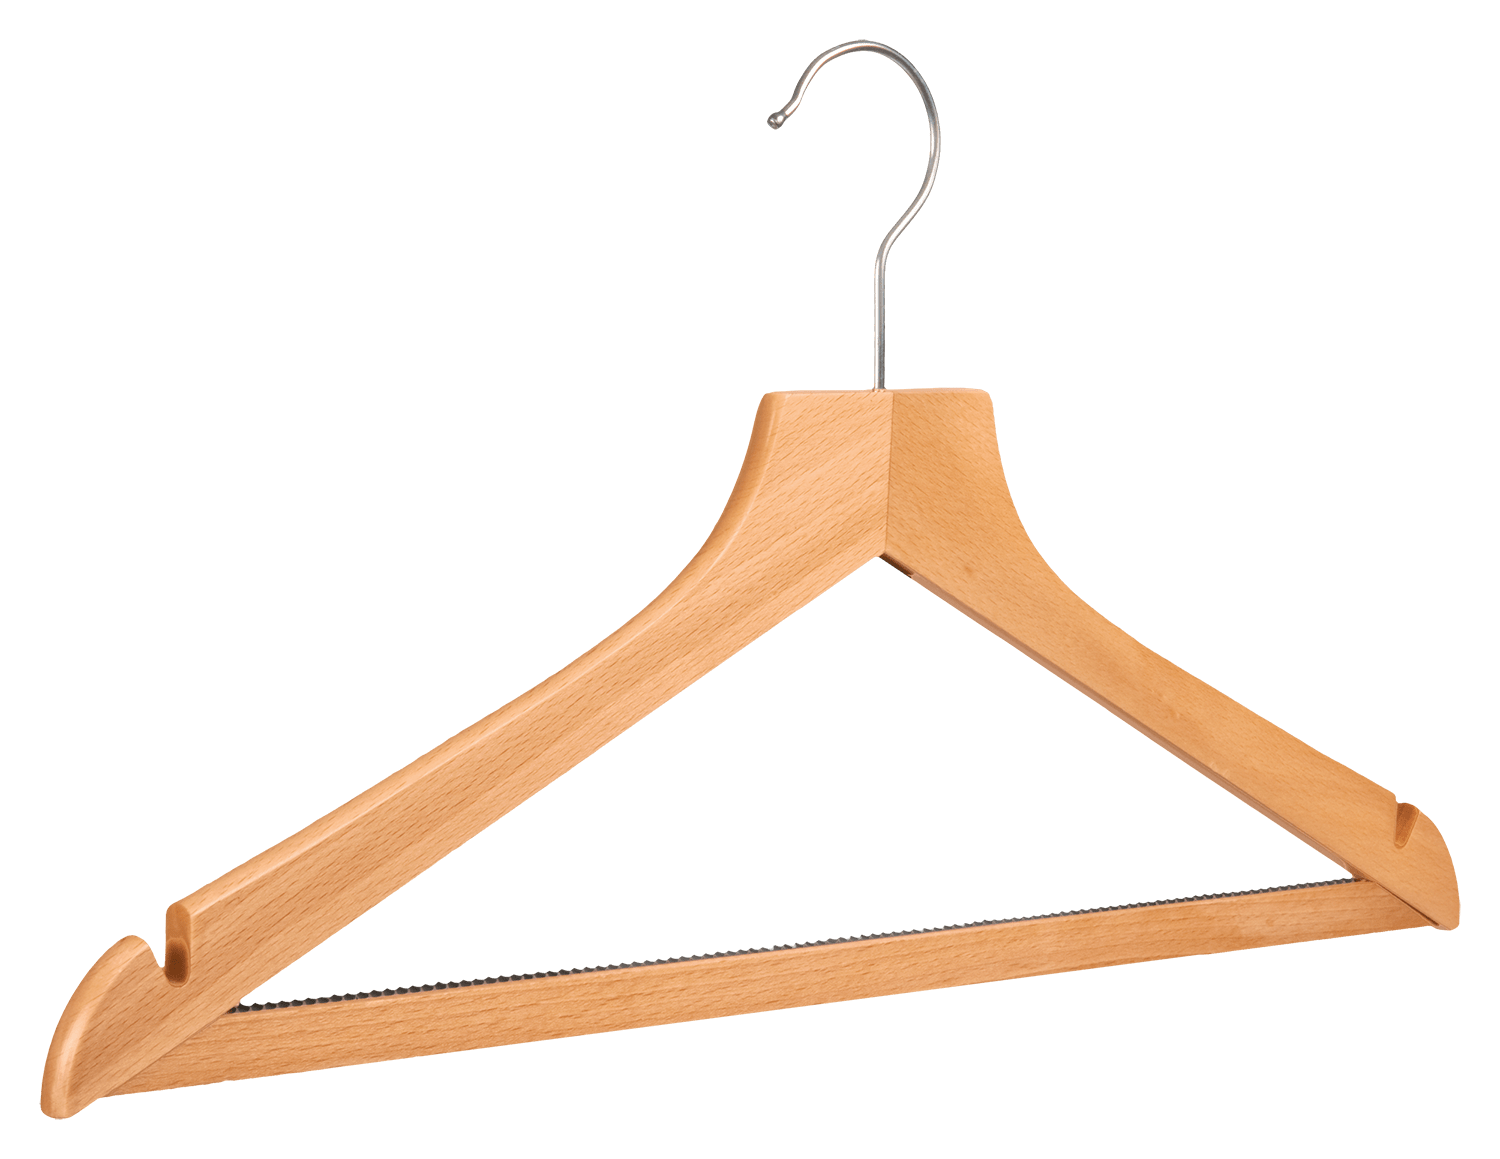 Triangular clipart hanger. Wooden clothes transparent png